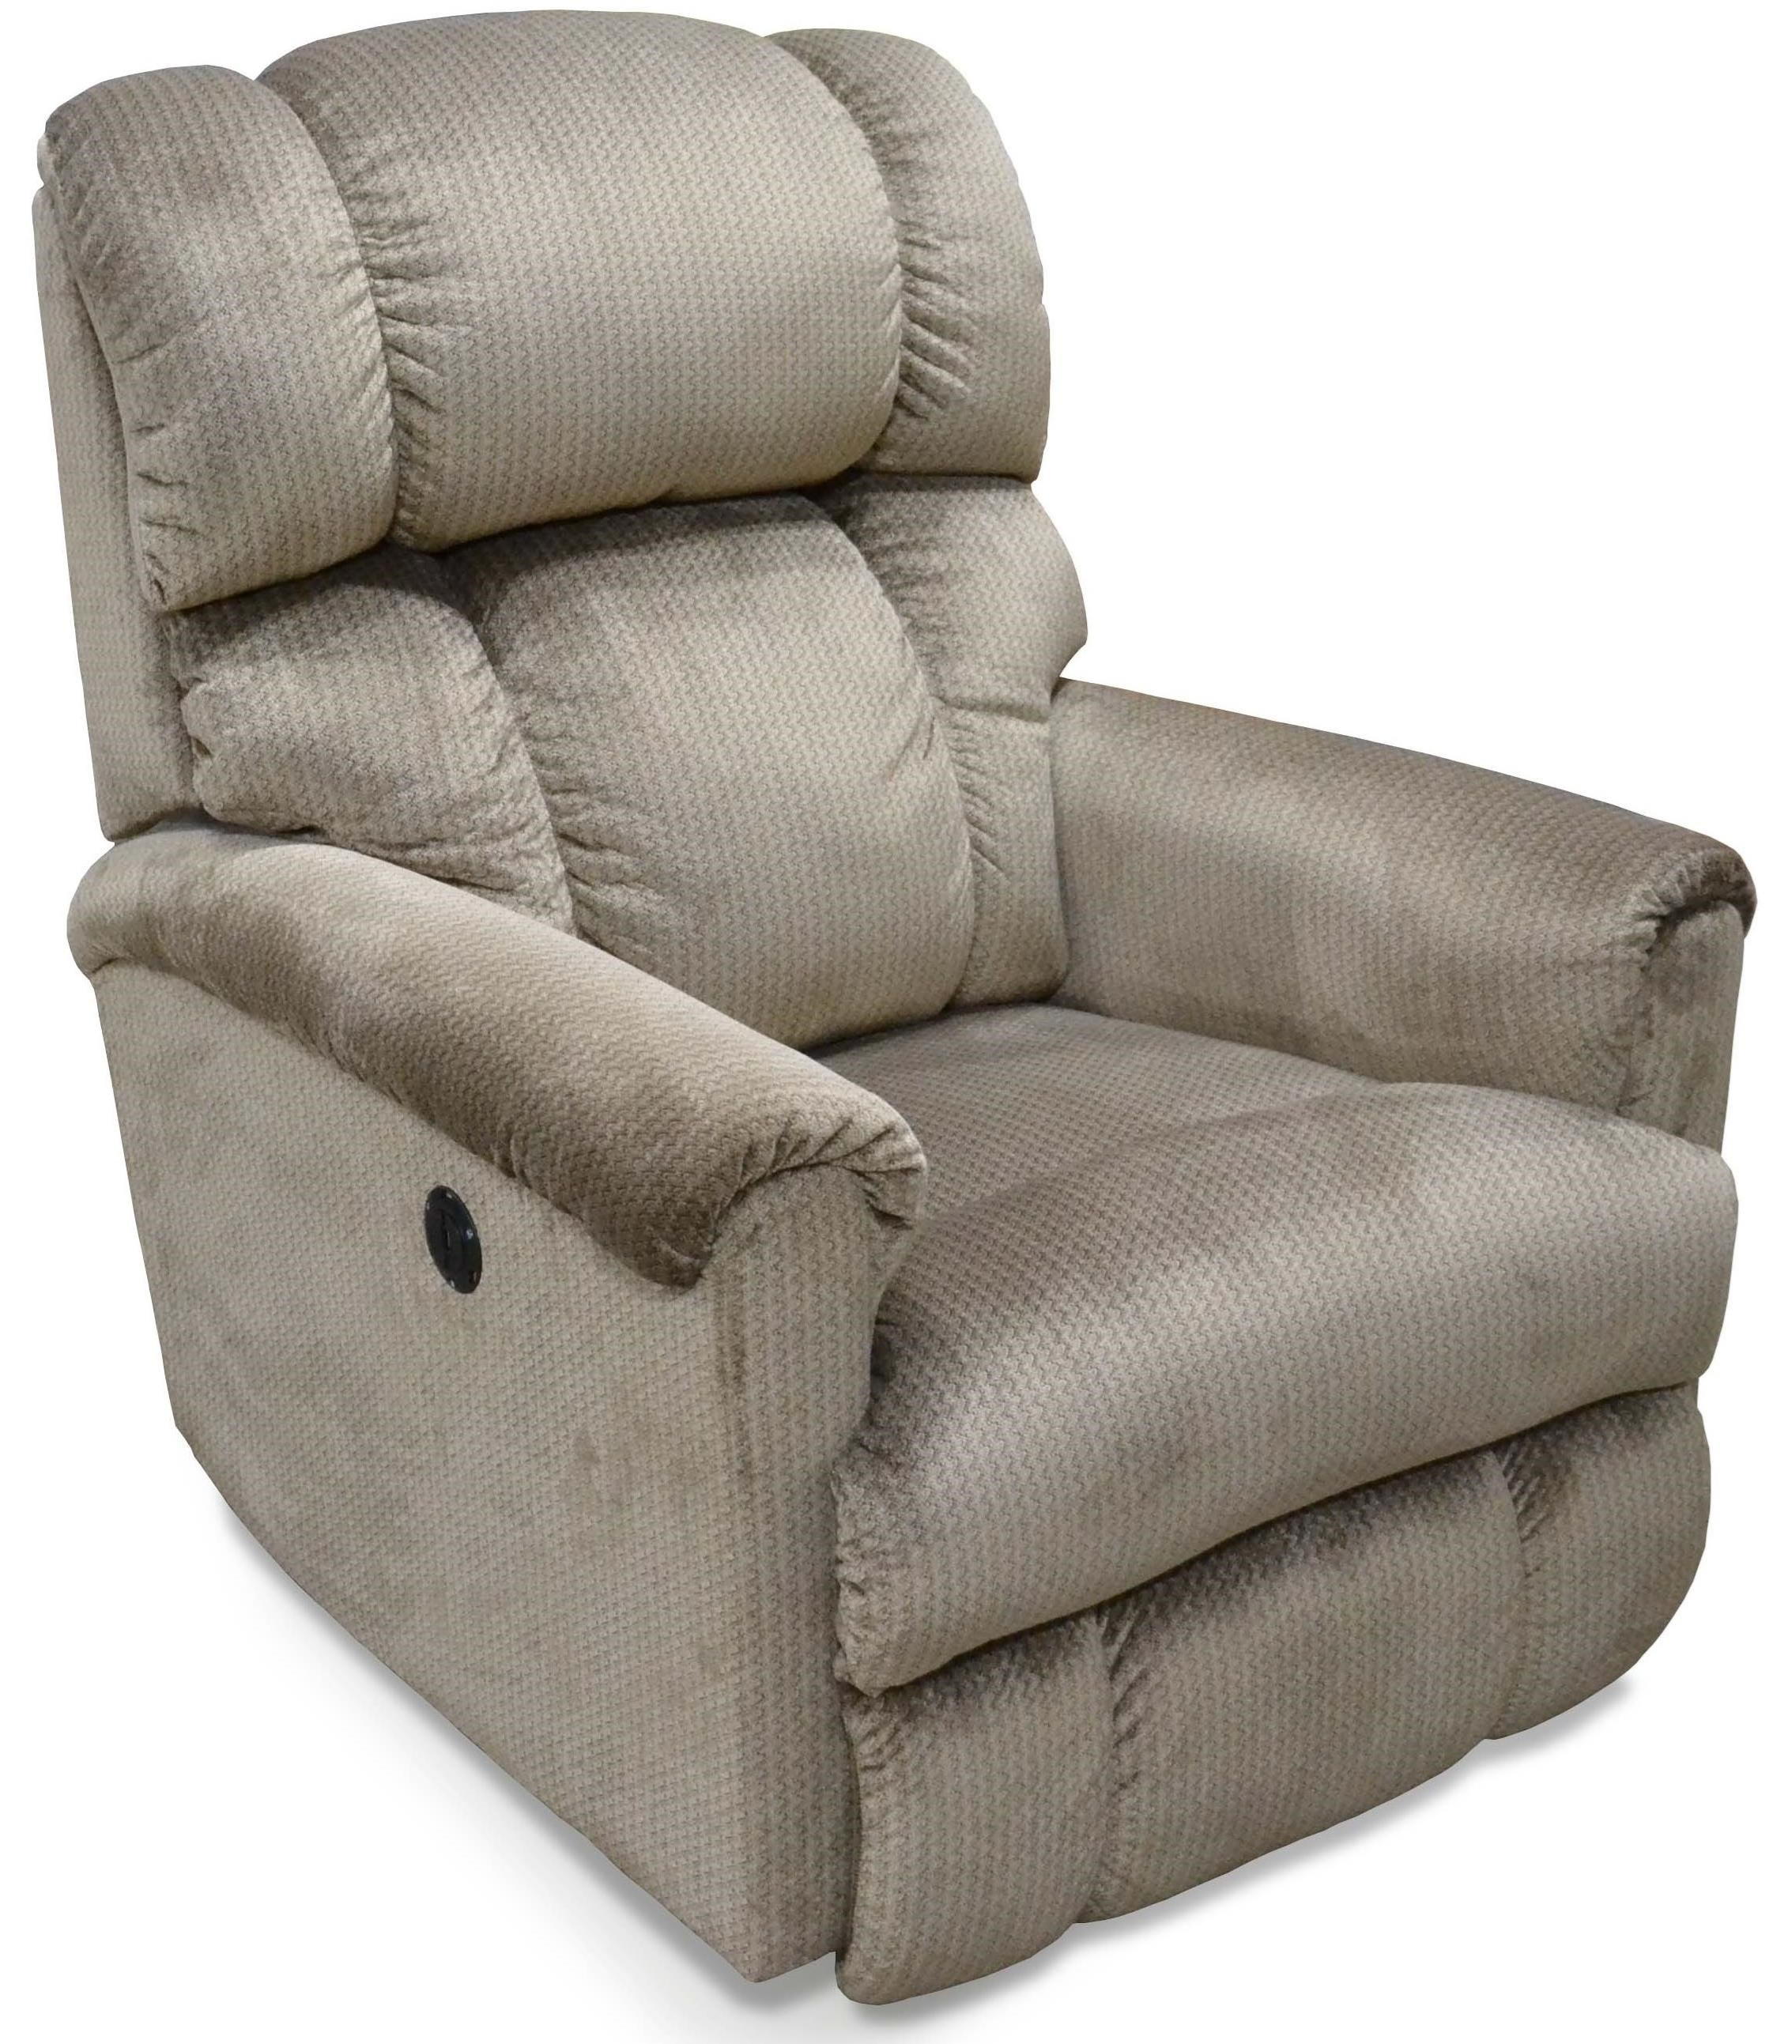 855 Power Recliner by Sunset Home at Sadler's Home Furnishings